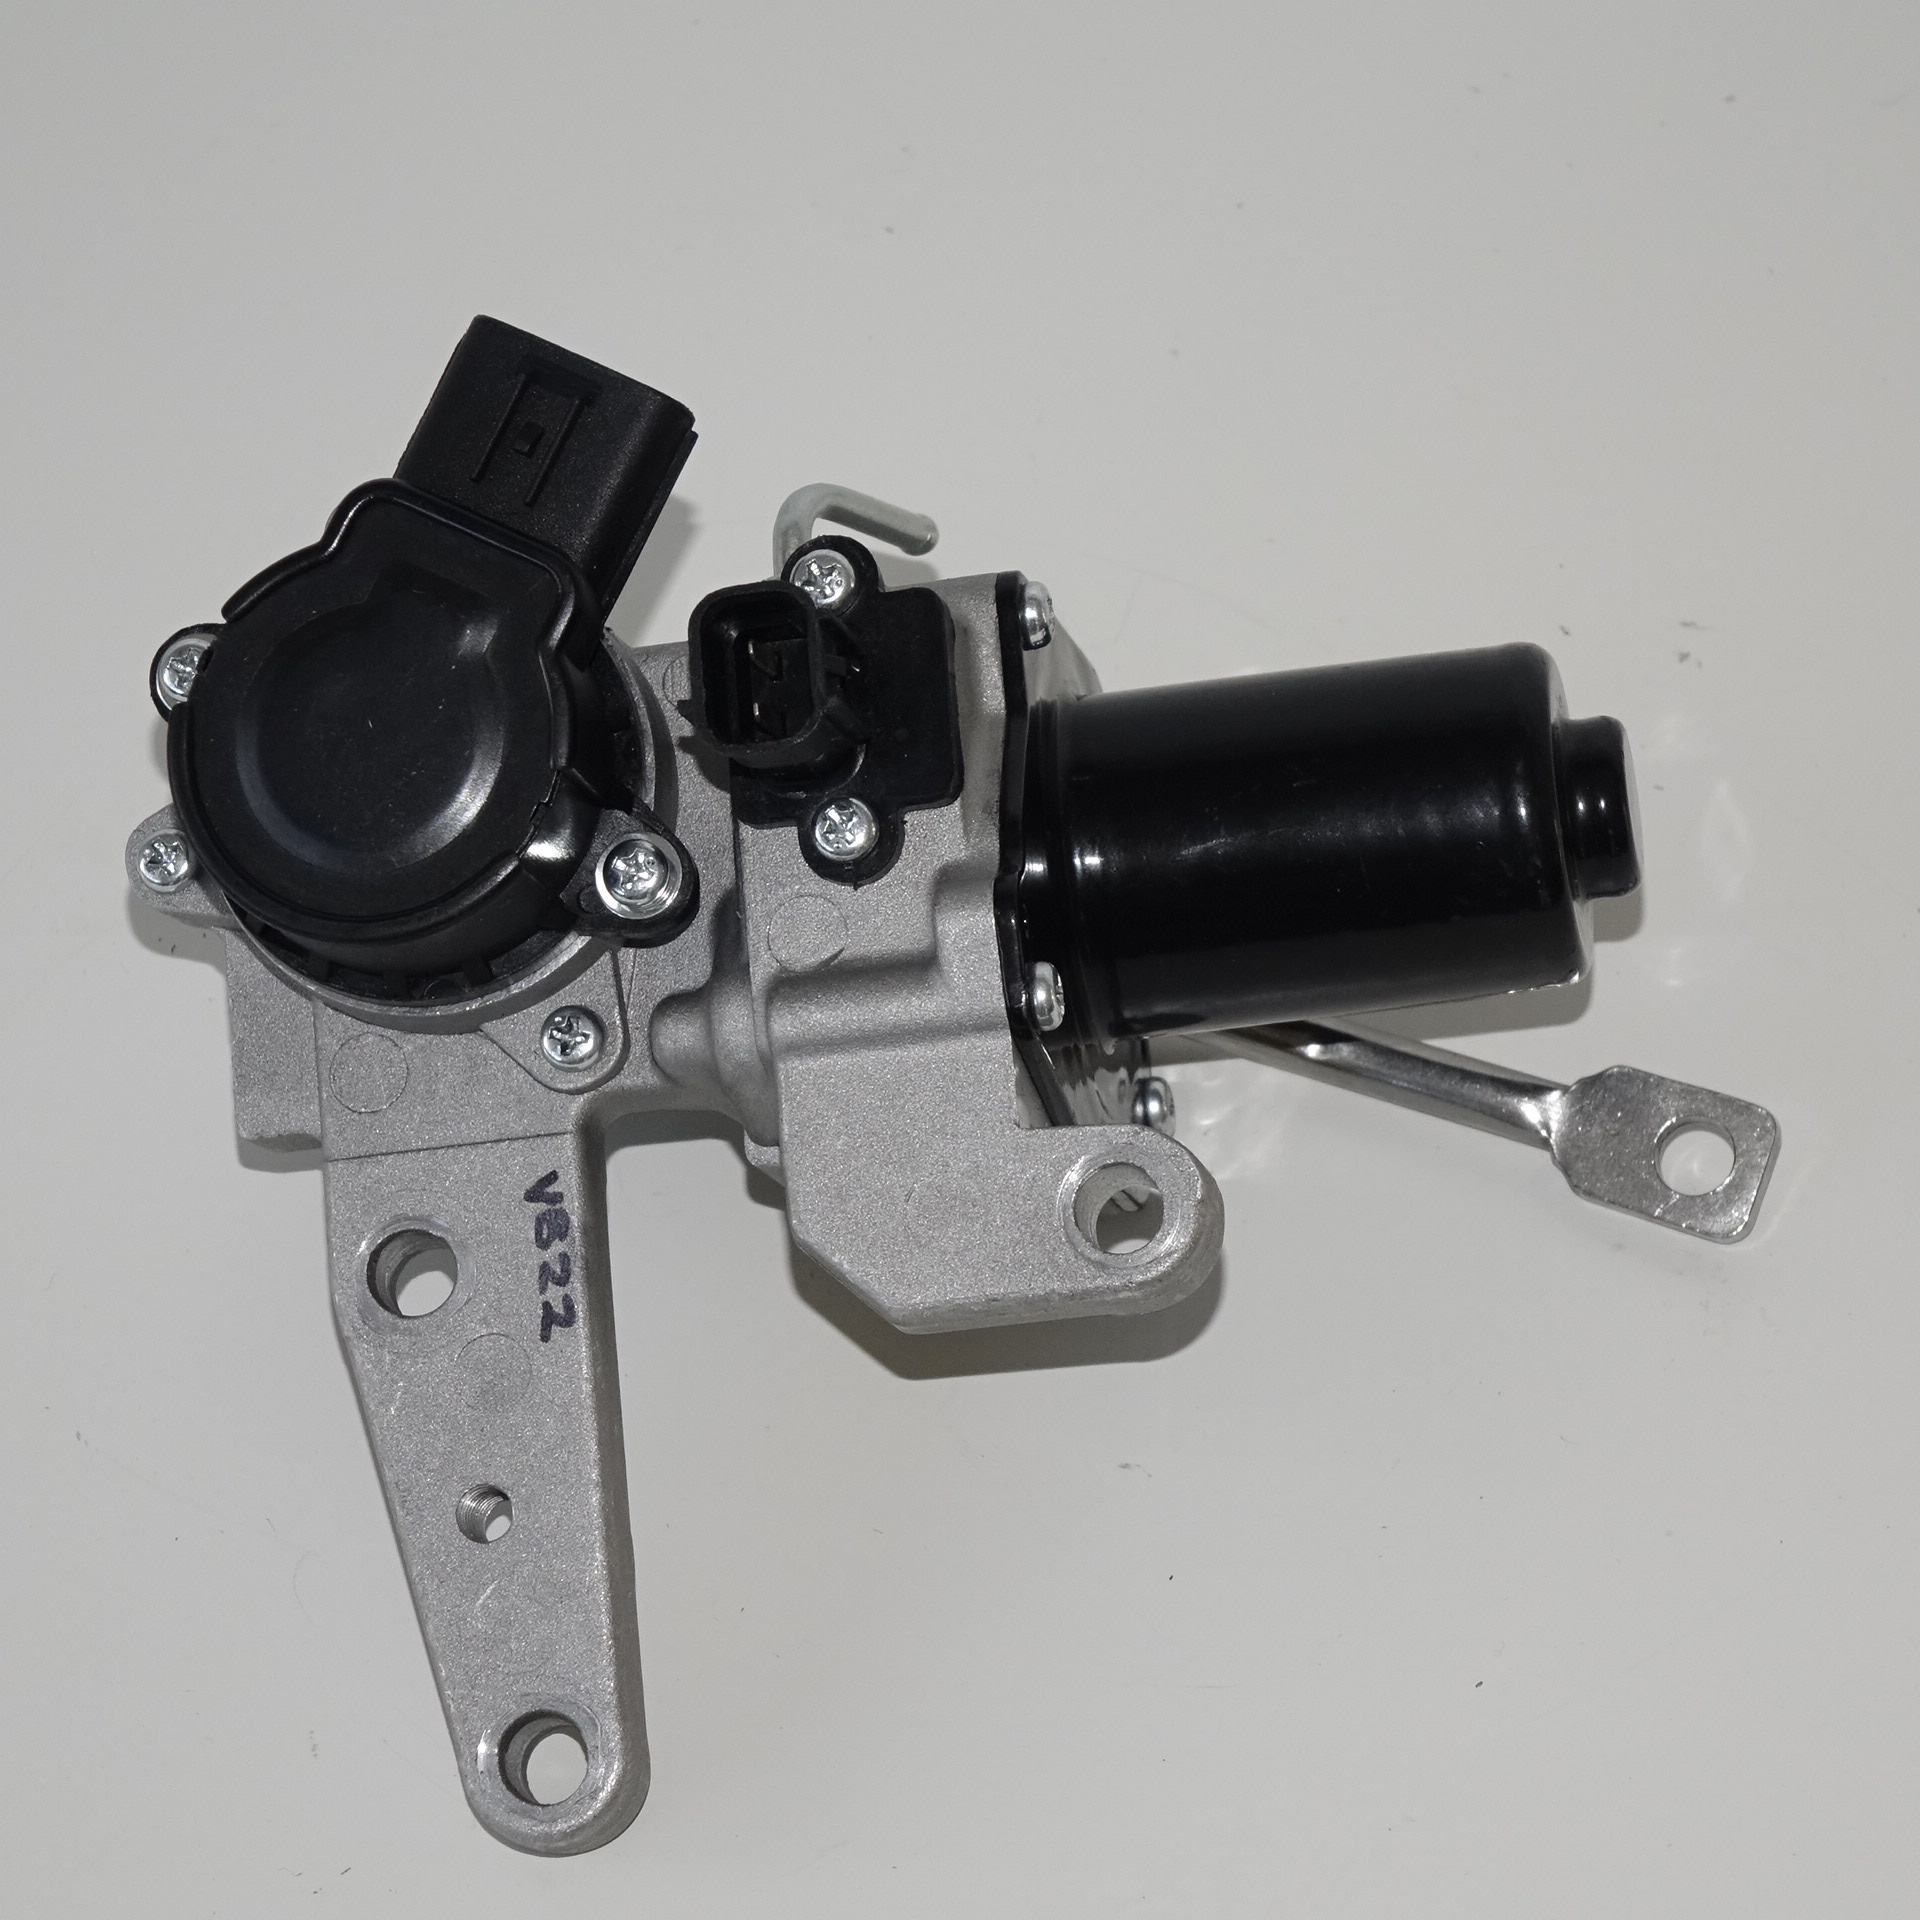 Turbocharger electronic stepper motor actuator suitable for Stepper motor position control